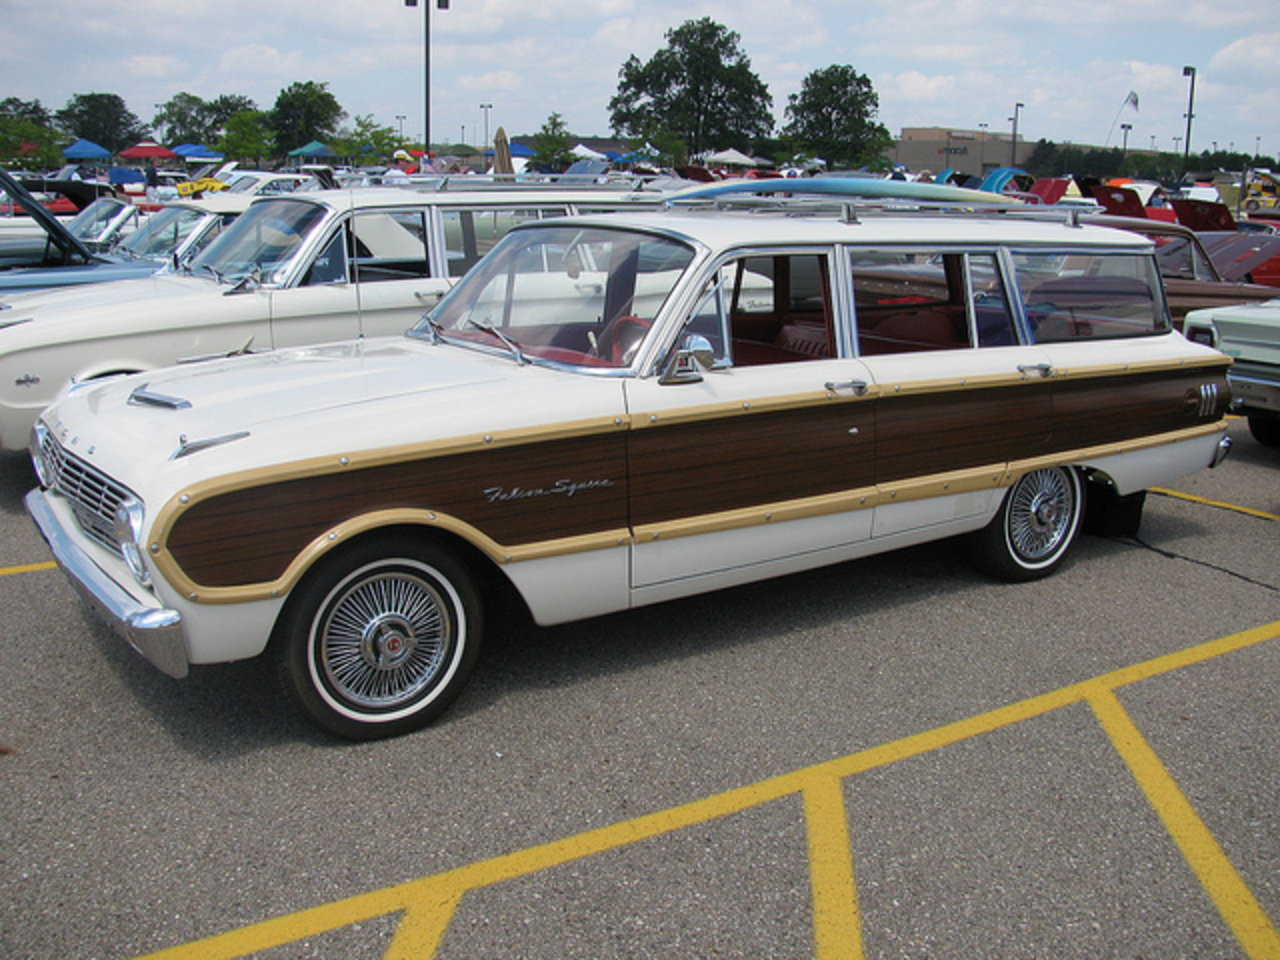 1963 Ford Falcon Squire Wagon | Flickr - Photo Sharing!